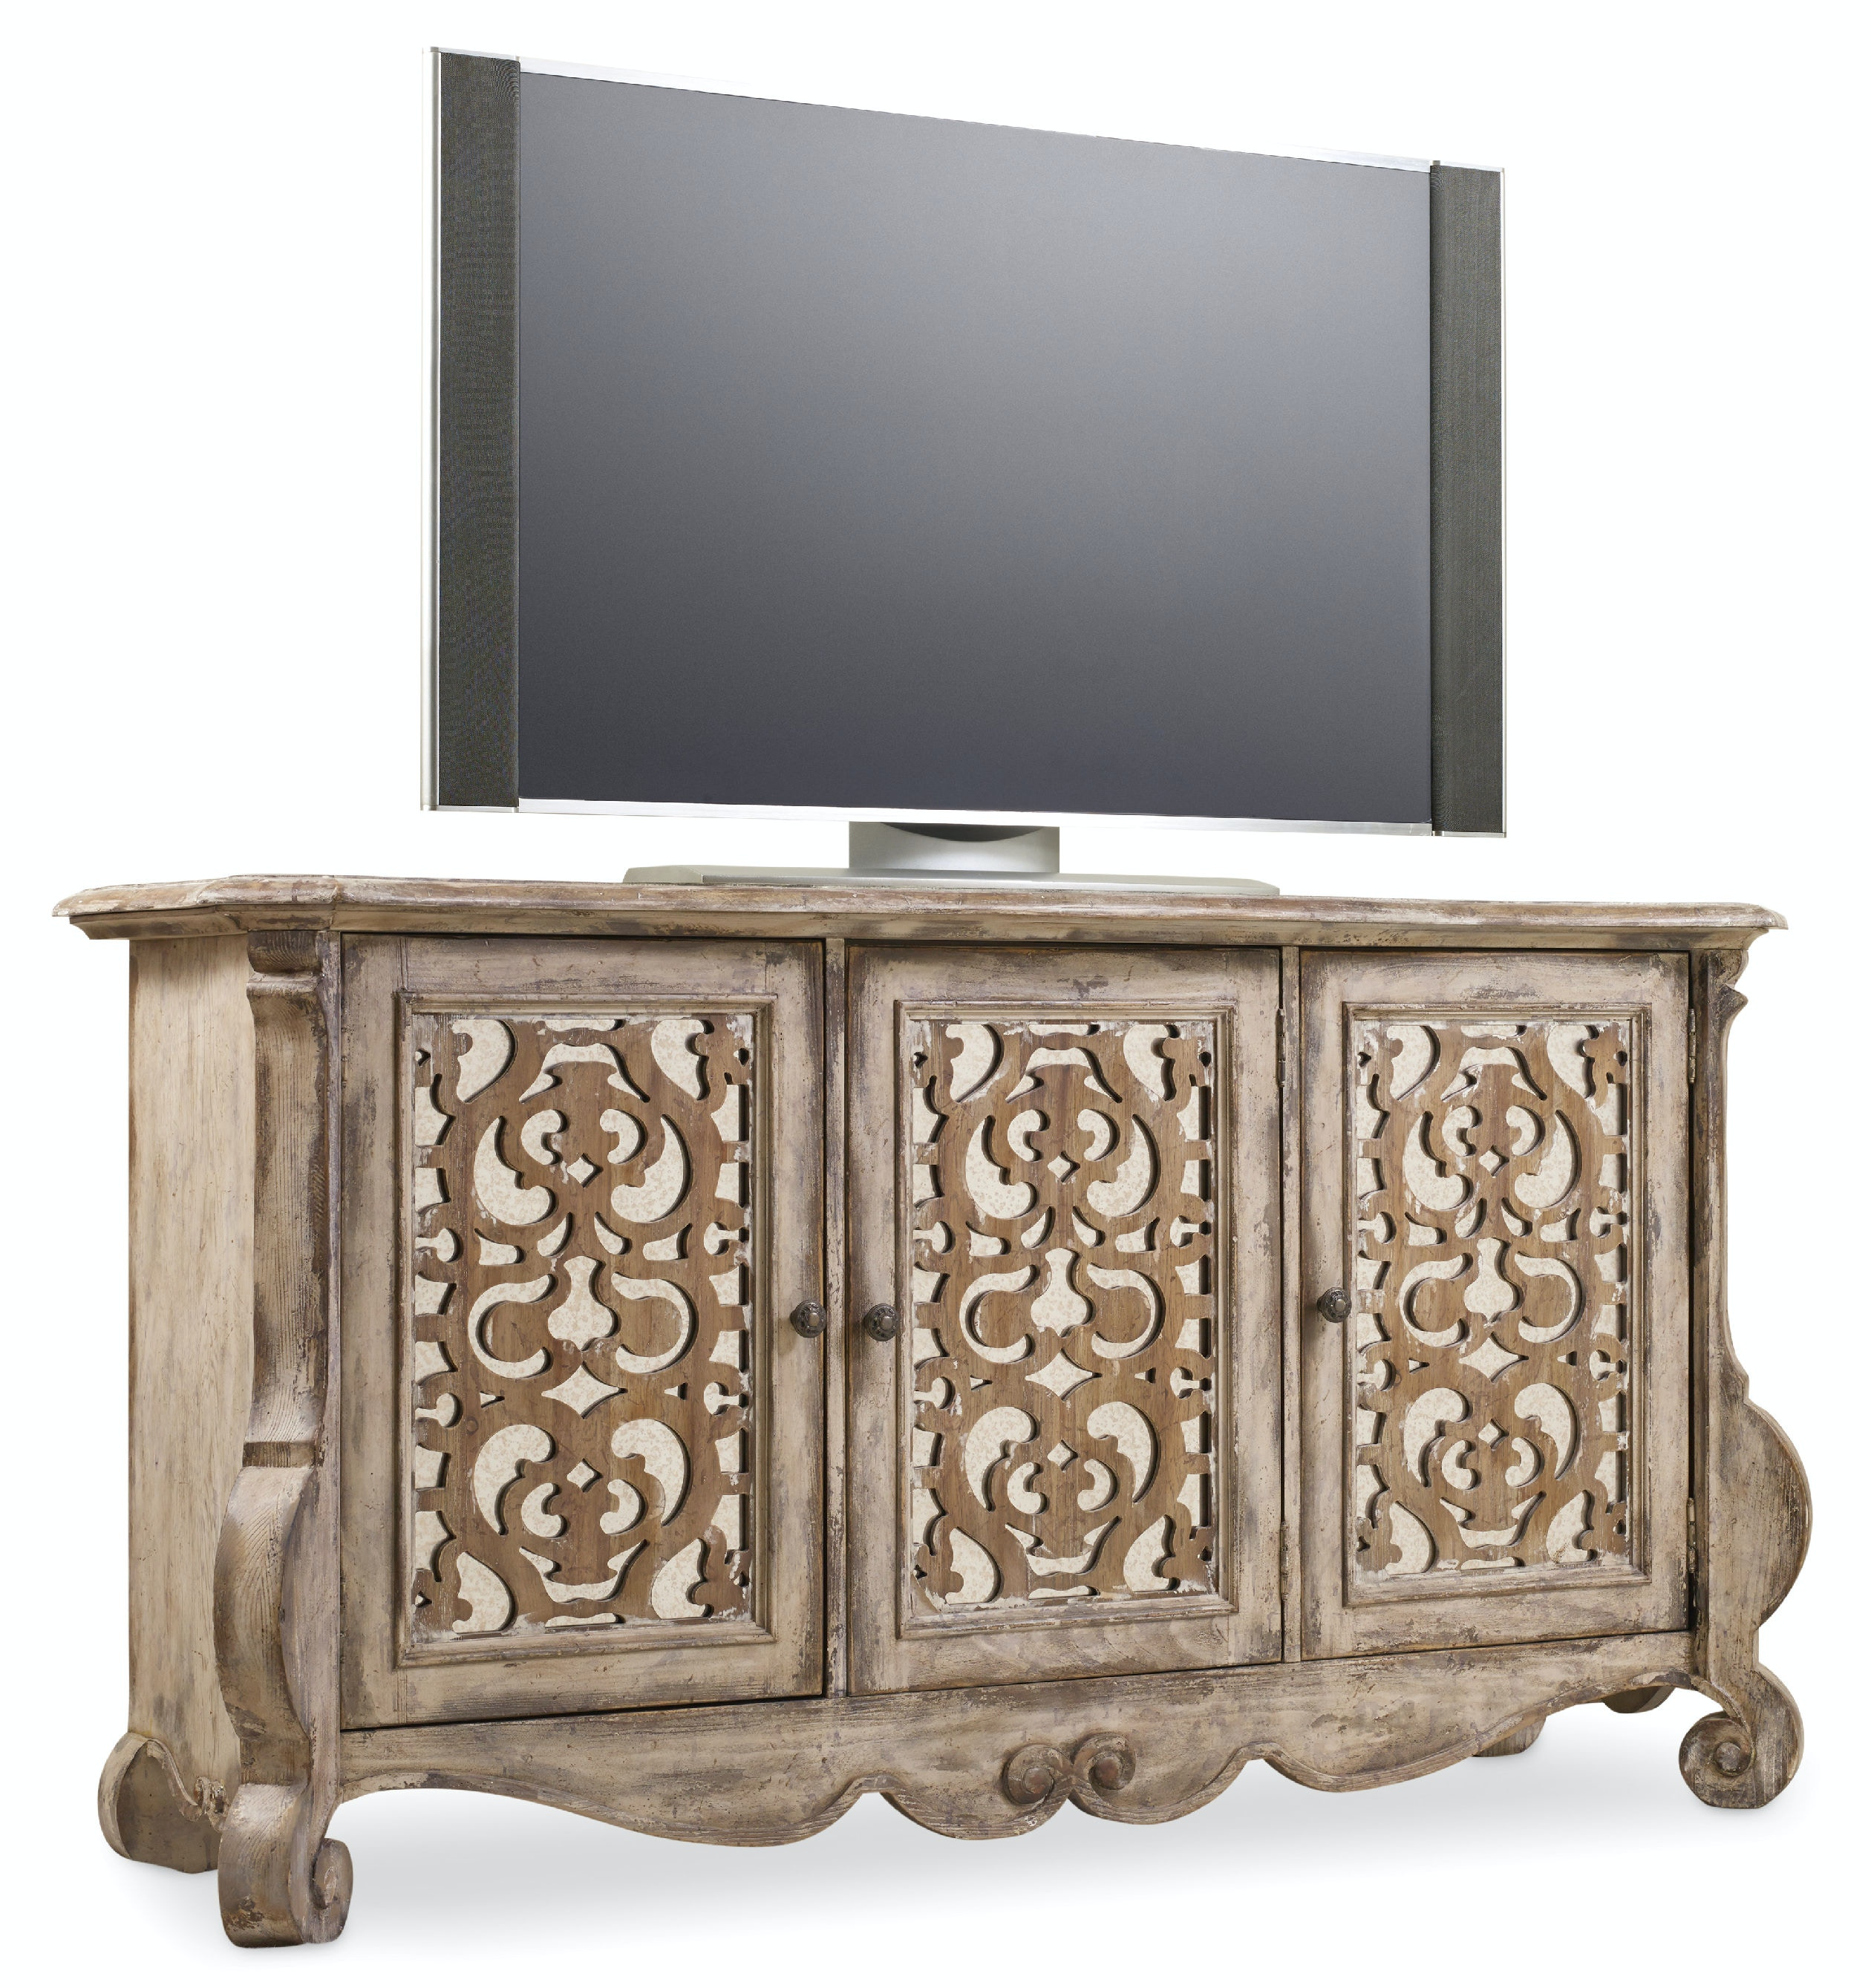 Hooker Furniture Home Entertainment Chatelet Entertainment Console  5351 55468 At Strobler Home Furniture   Strobler Home Furniture   Columbia,  SC